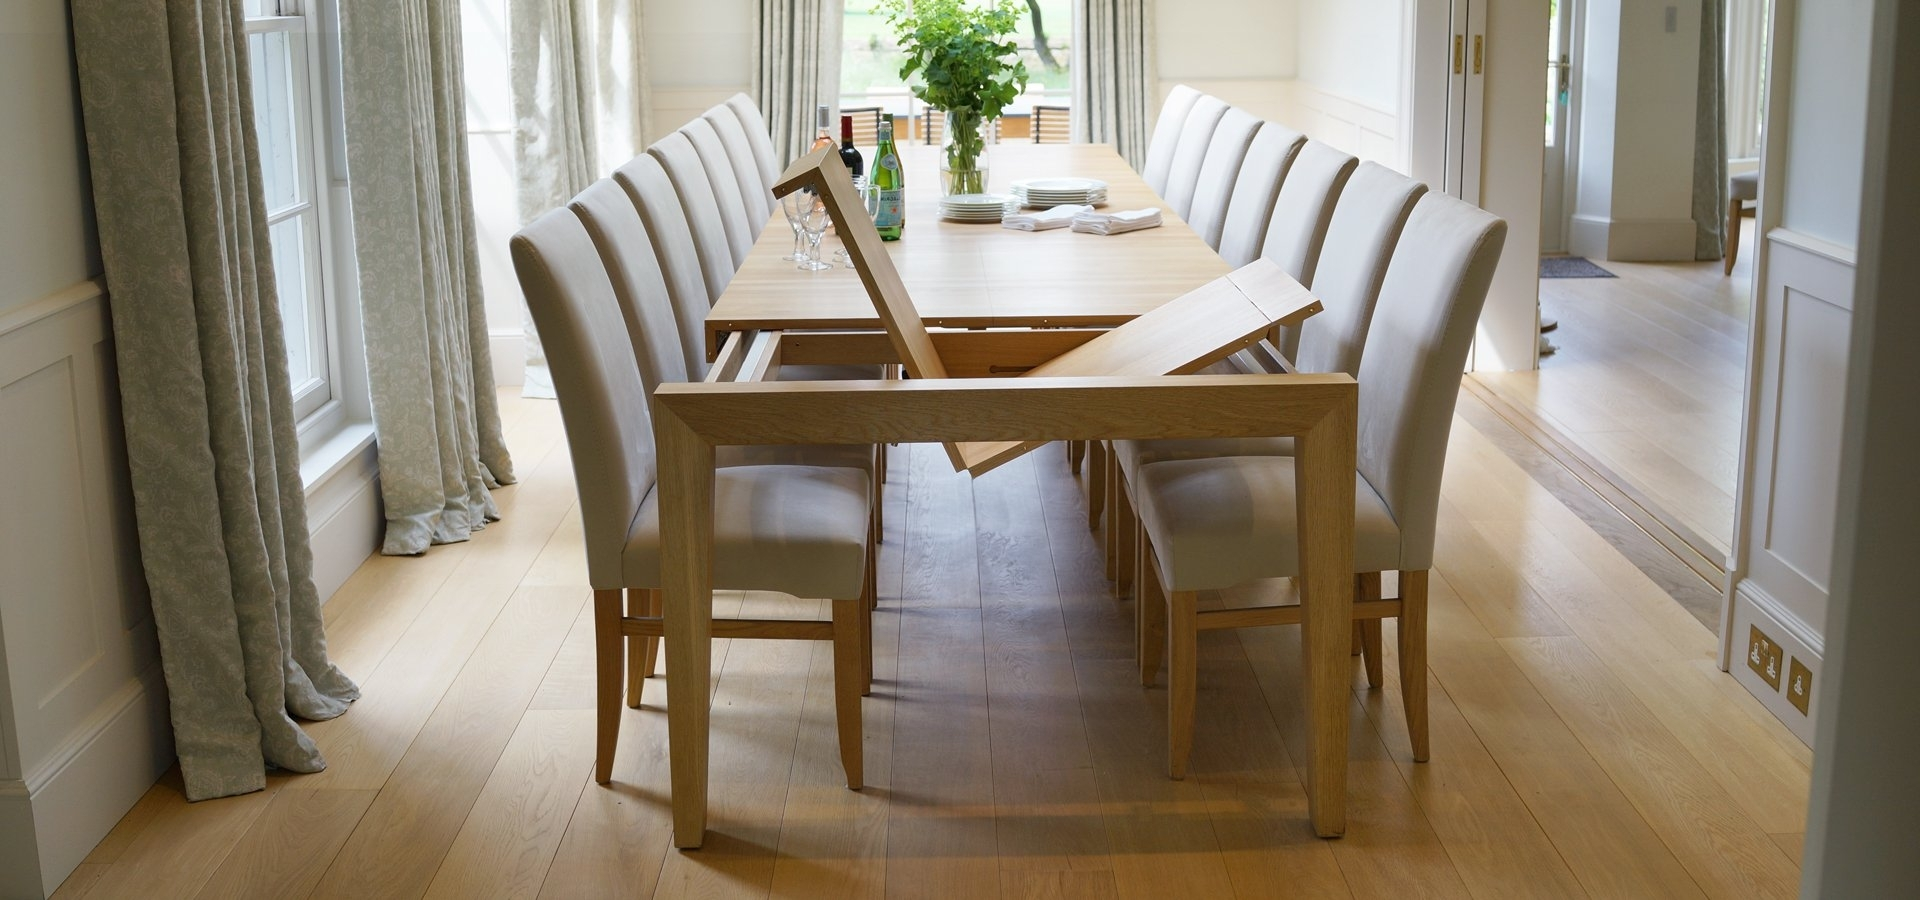 2017 Round Oak Extendable Dining Tables And Chairs throughout Contemporary Dining Tables & Furnitureberrydesign. Bespoke /custom